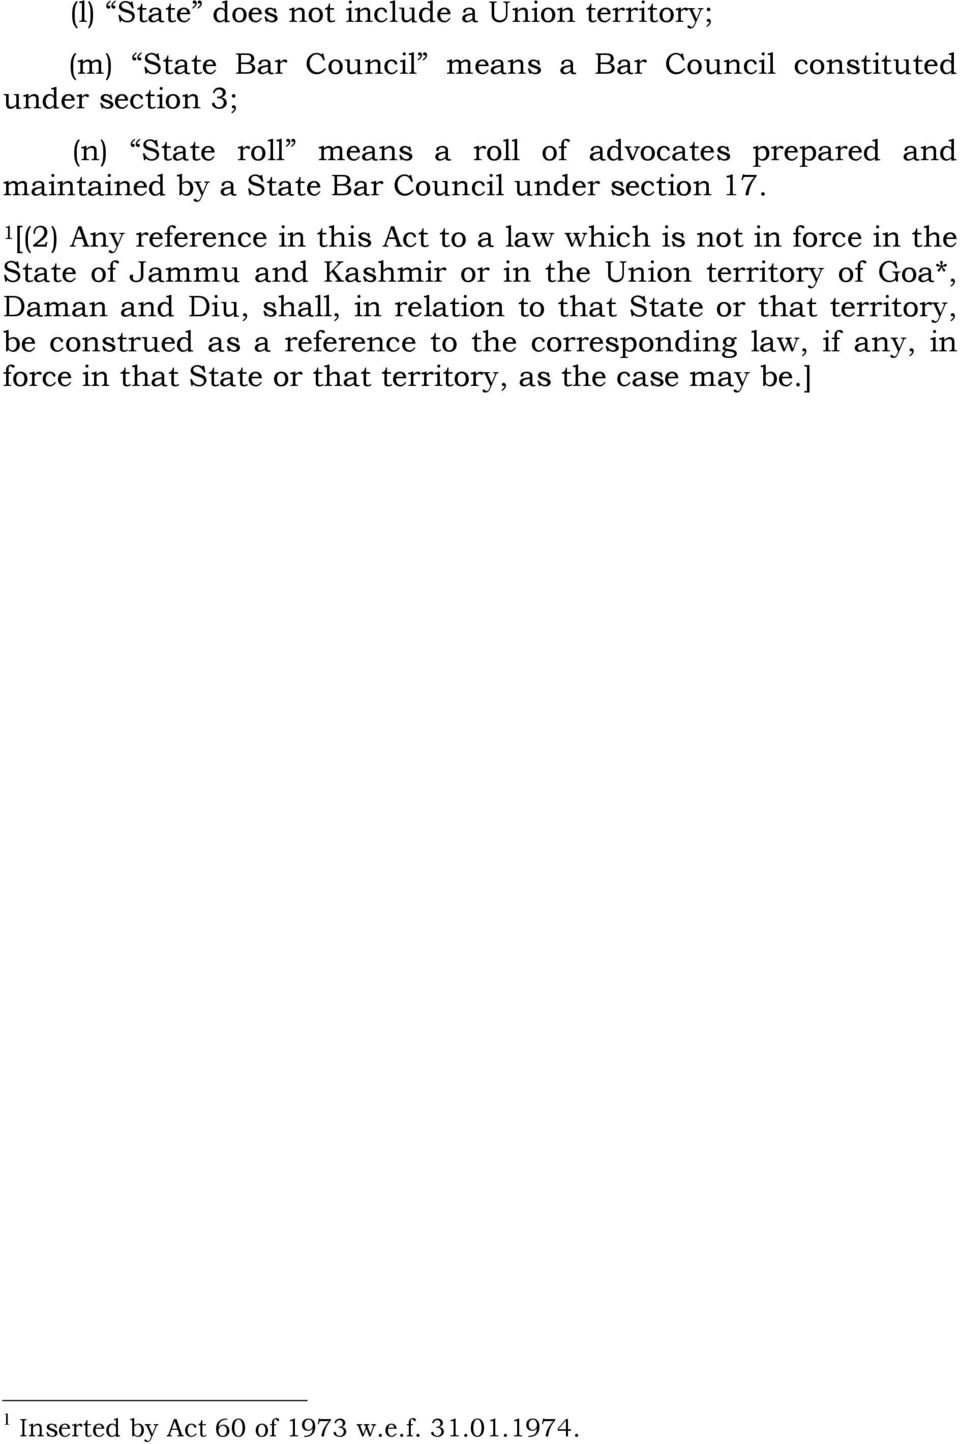 [(2) Any reference in this Act to a law which is not in force in the State of Jammu and Kashmir or in the Union territory of Goa*, Daman and Diu,